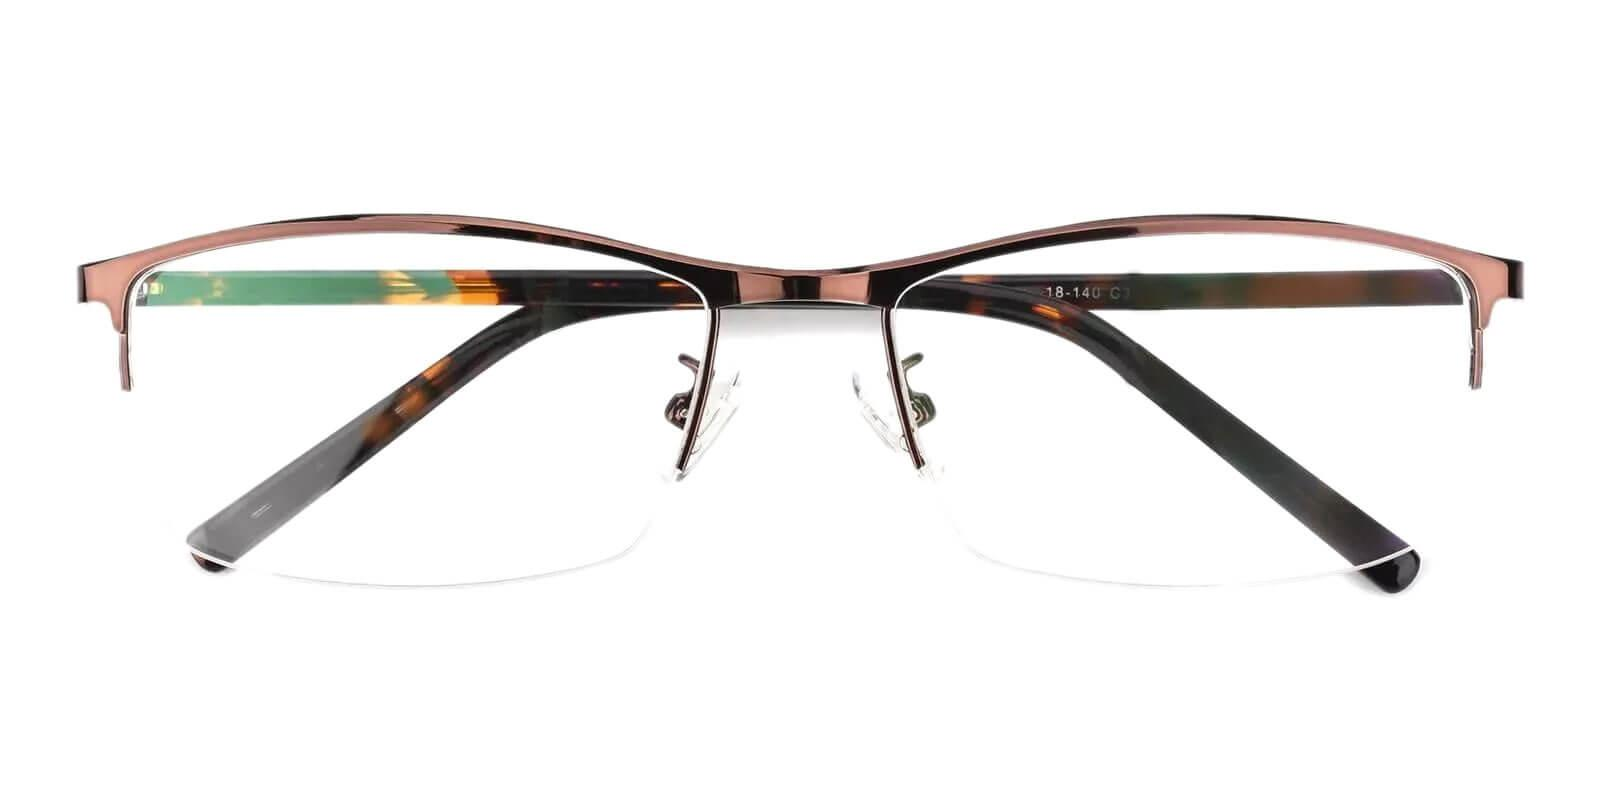 William Brown Metal Eyeglasses , NosePads Frames from ABBE Glasses